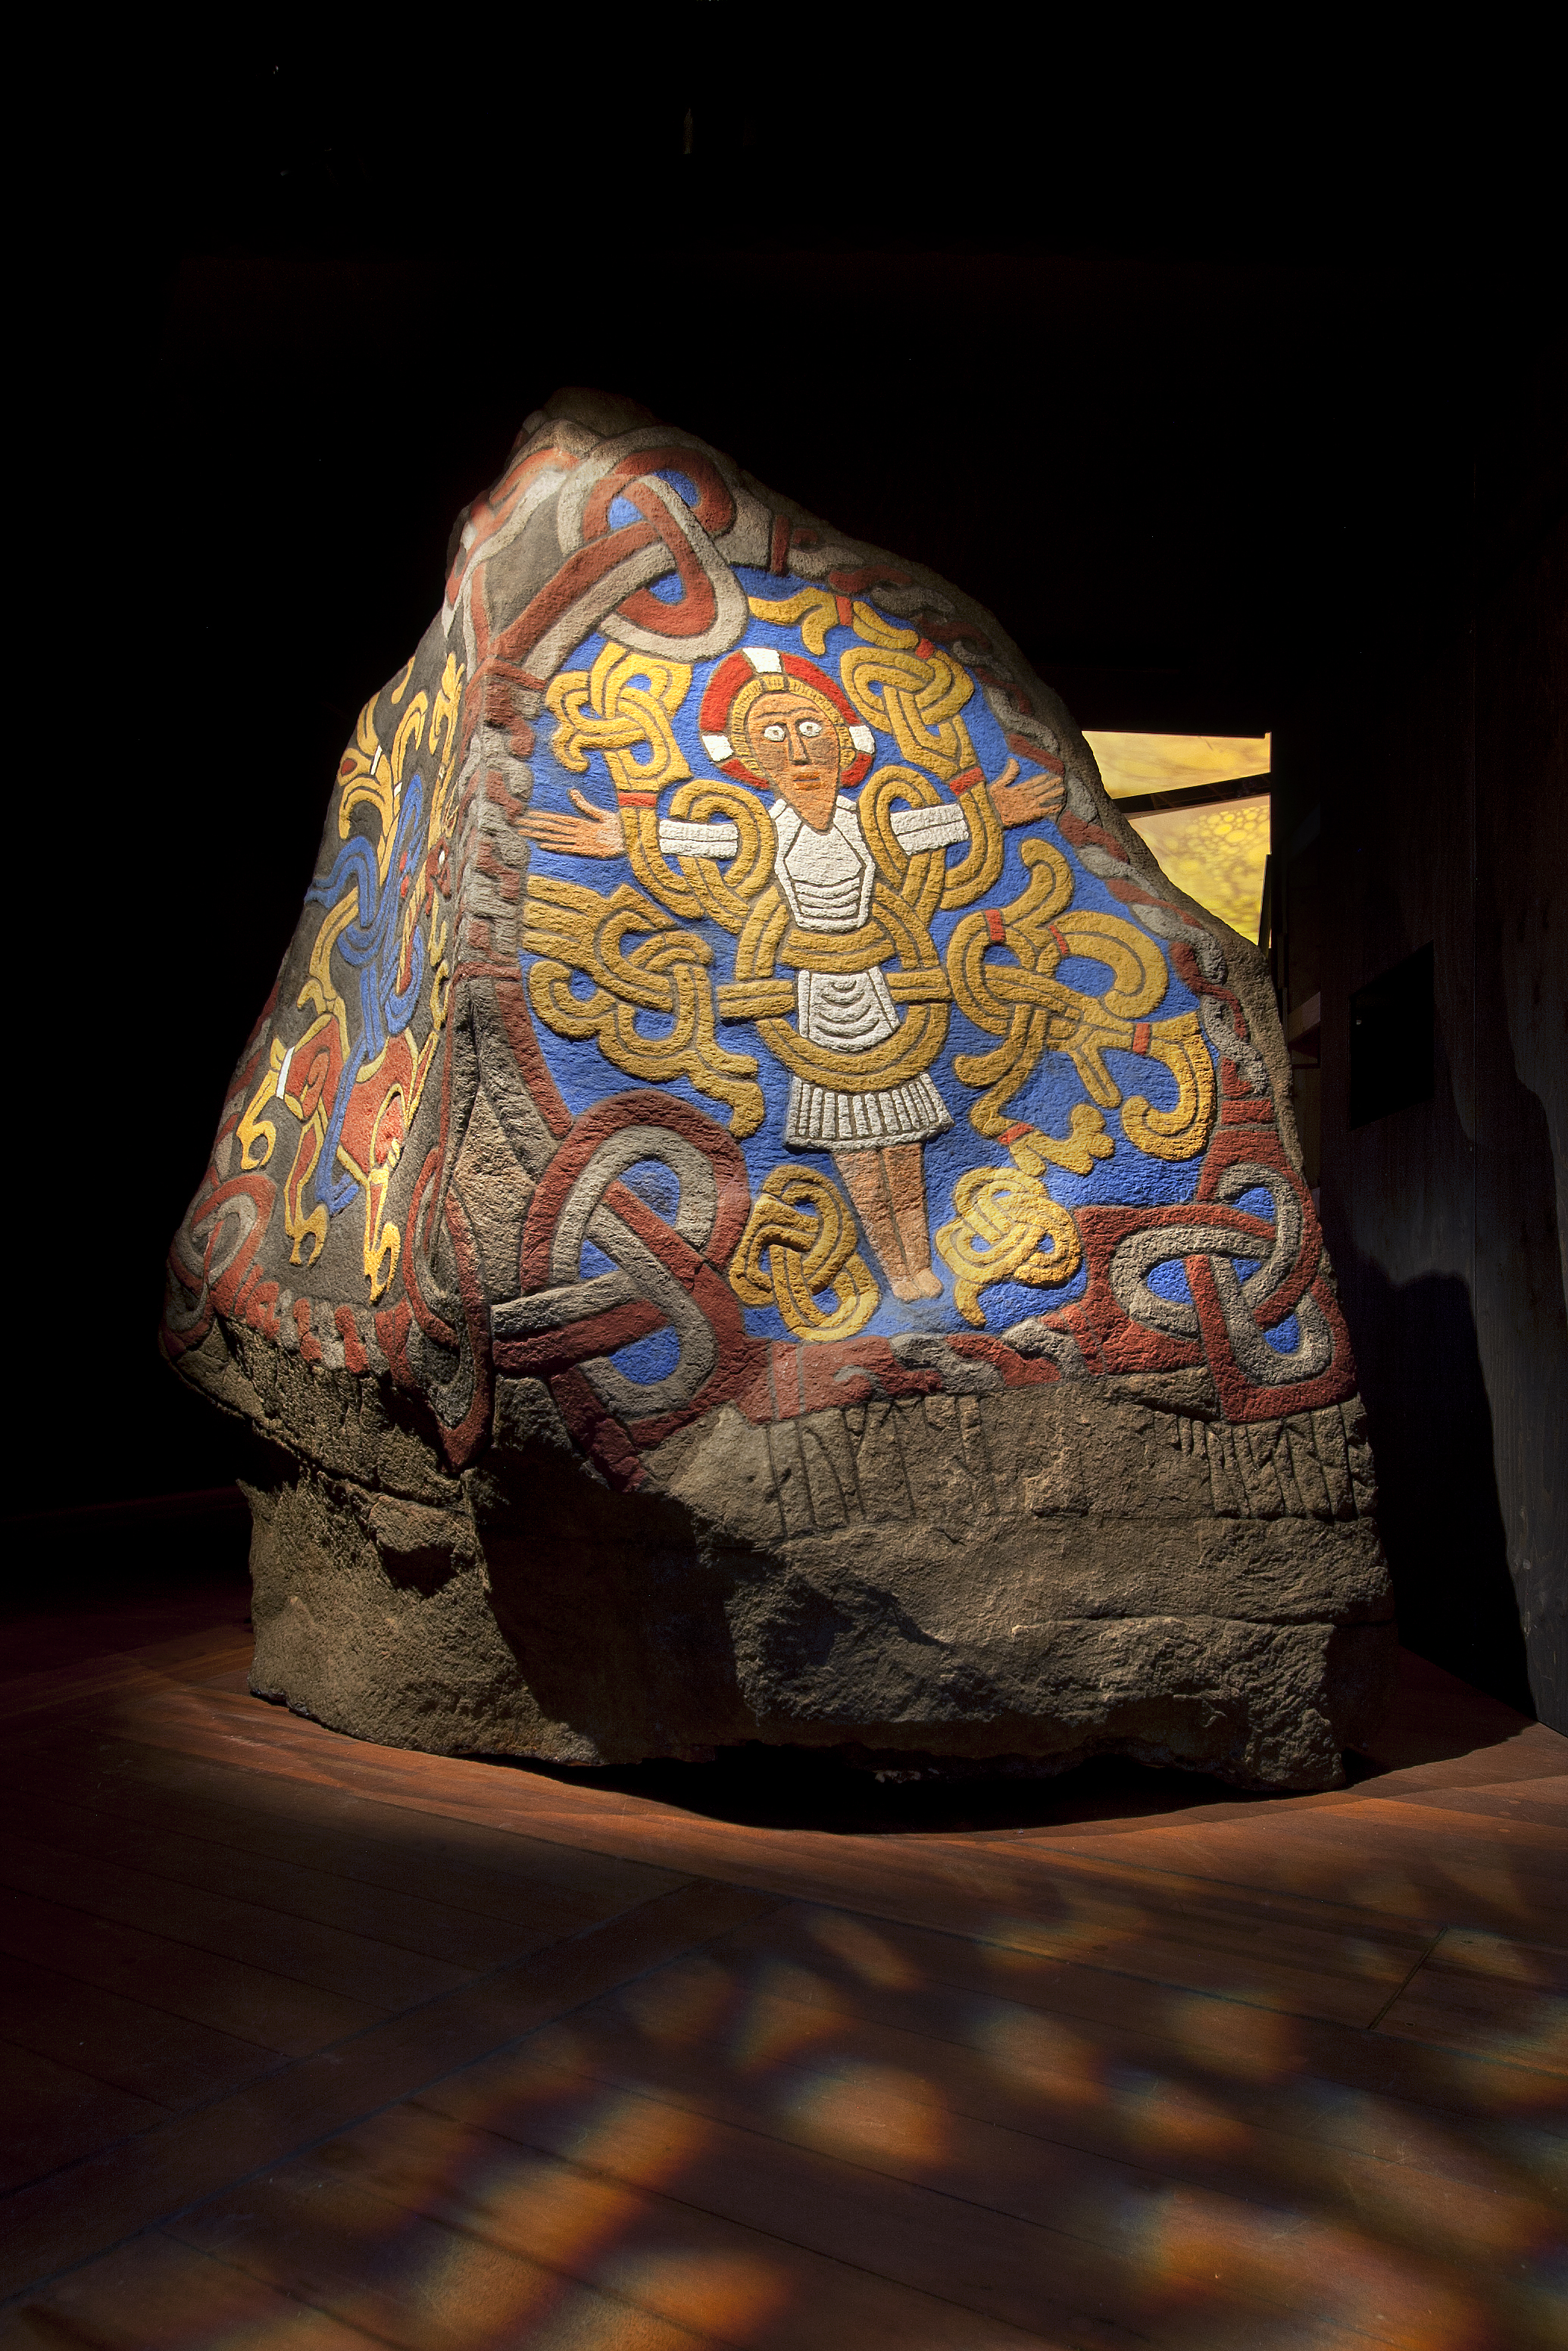 Replica of the Jelling Stone showing how it would have looked with its original paint